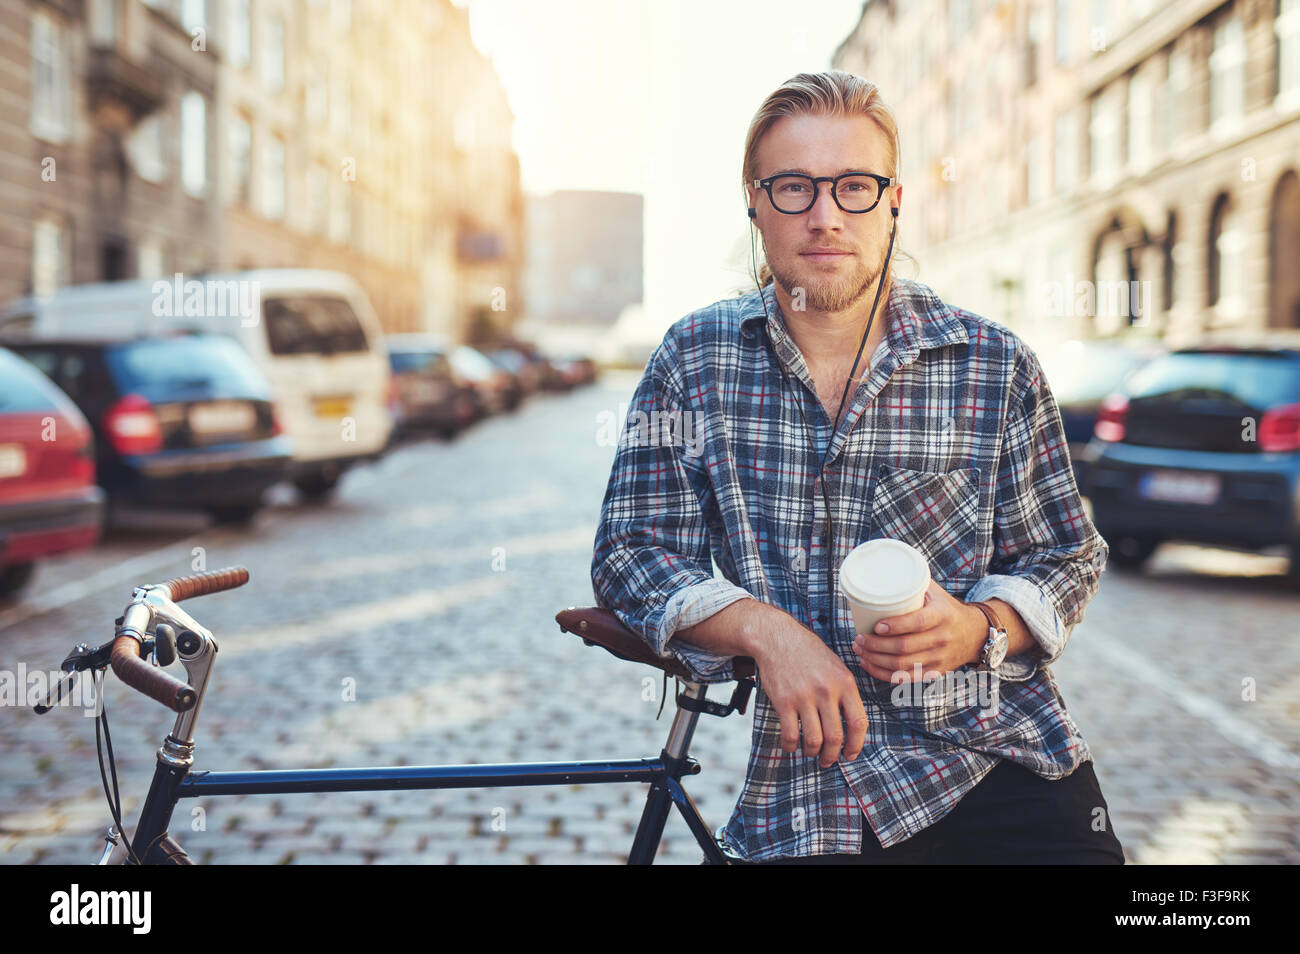 Cool man looking at camera. City lifestyle, enjoying life in the city - Stock Image